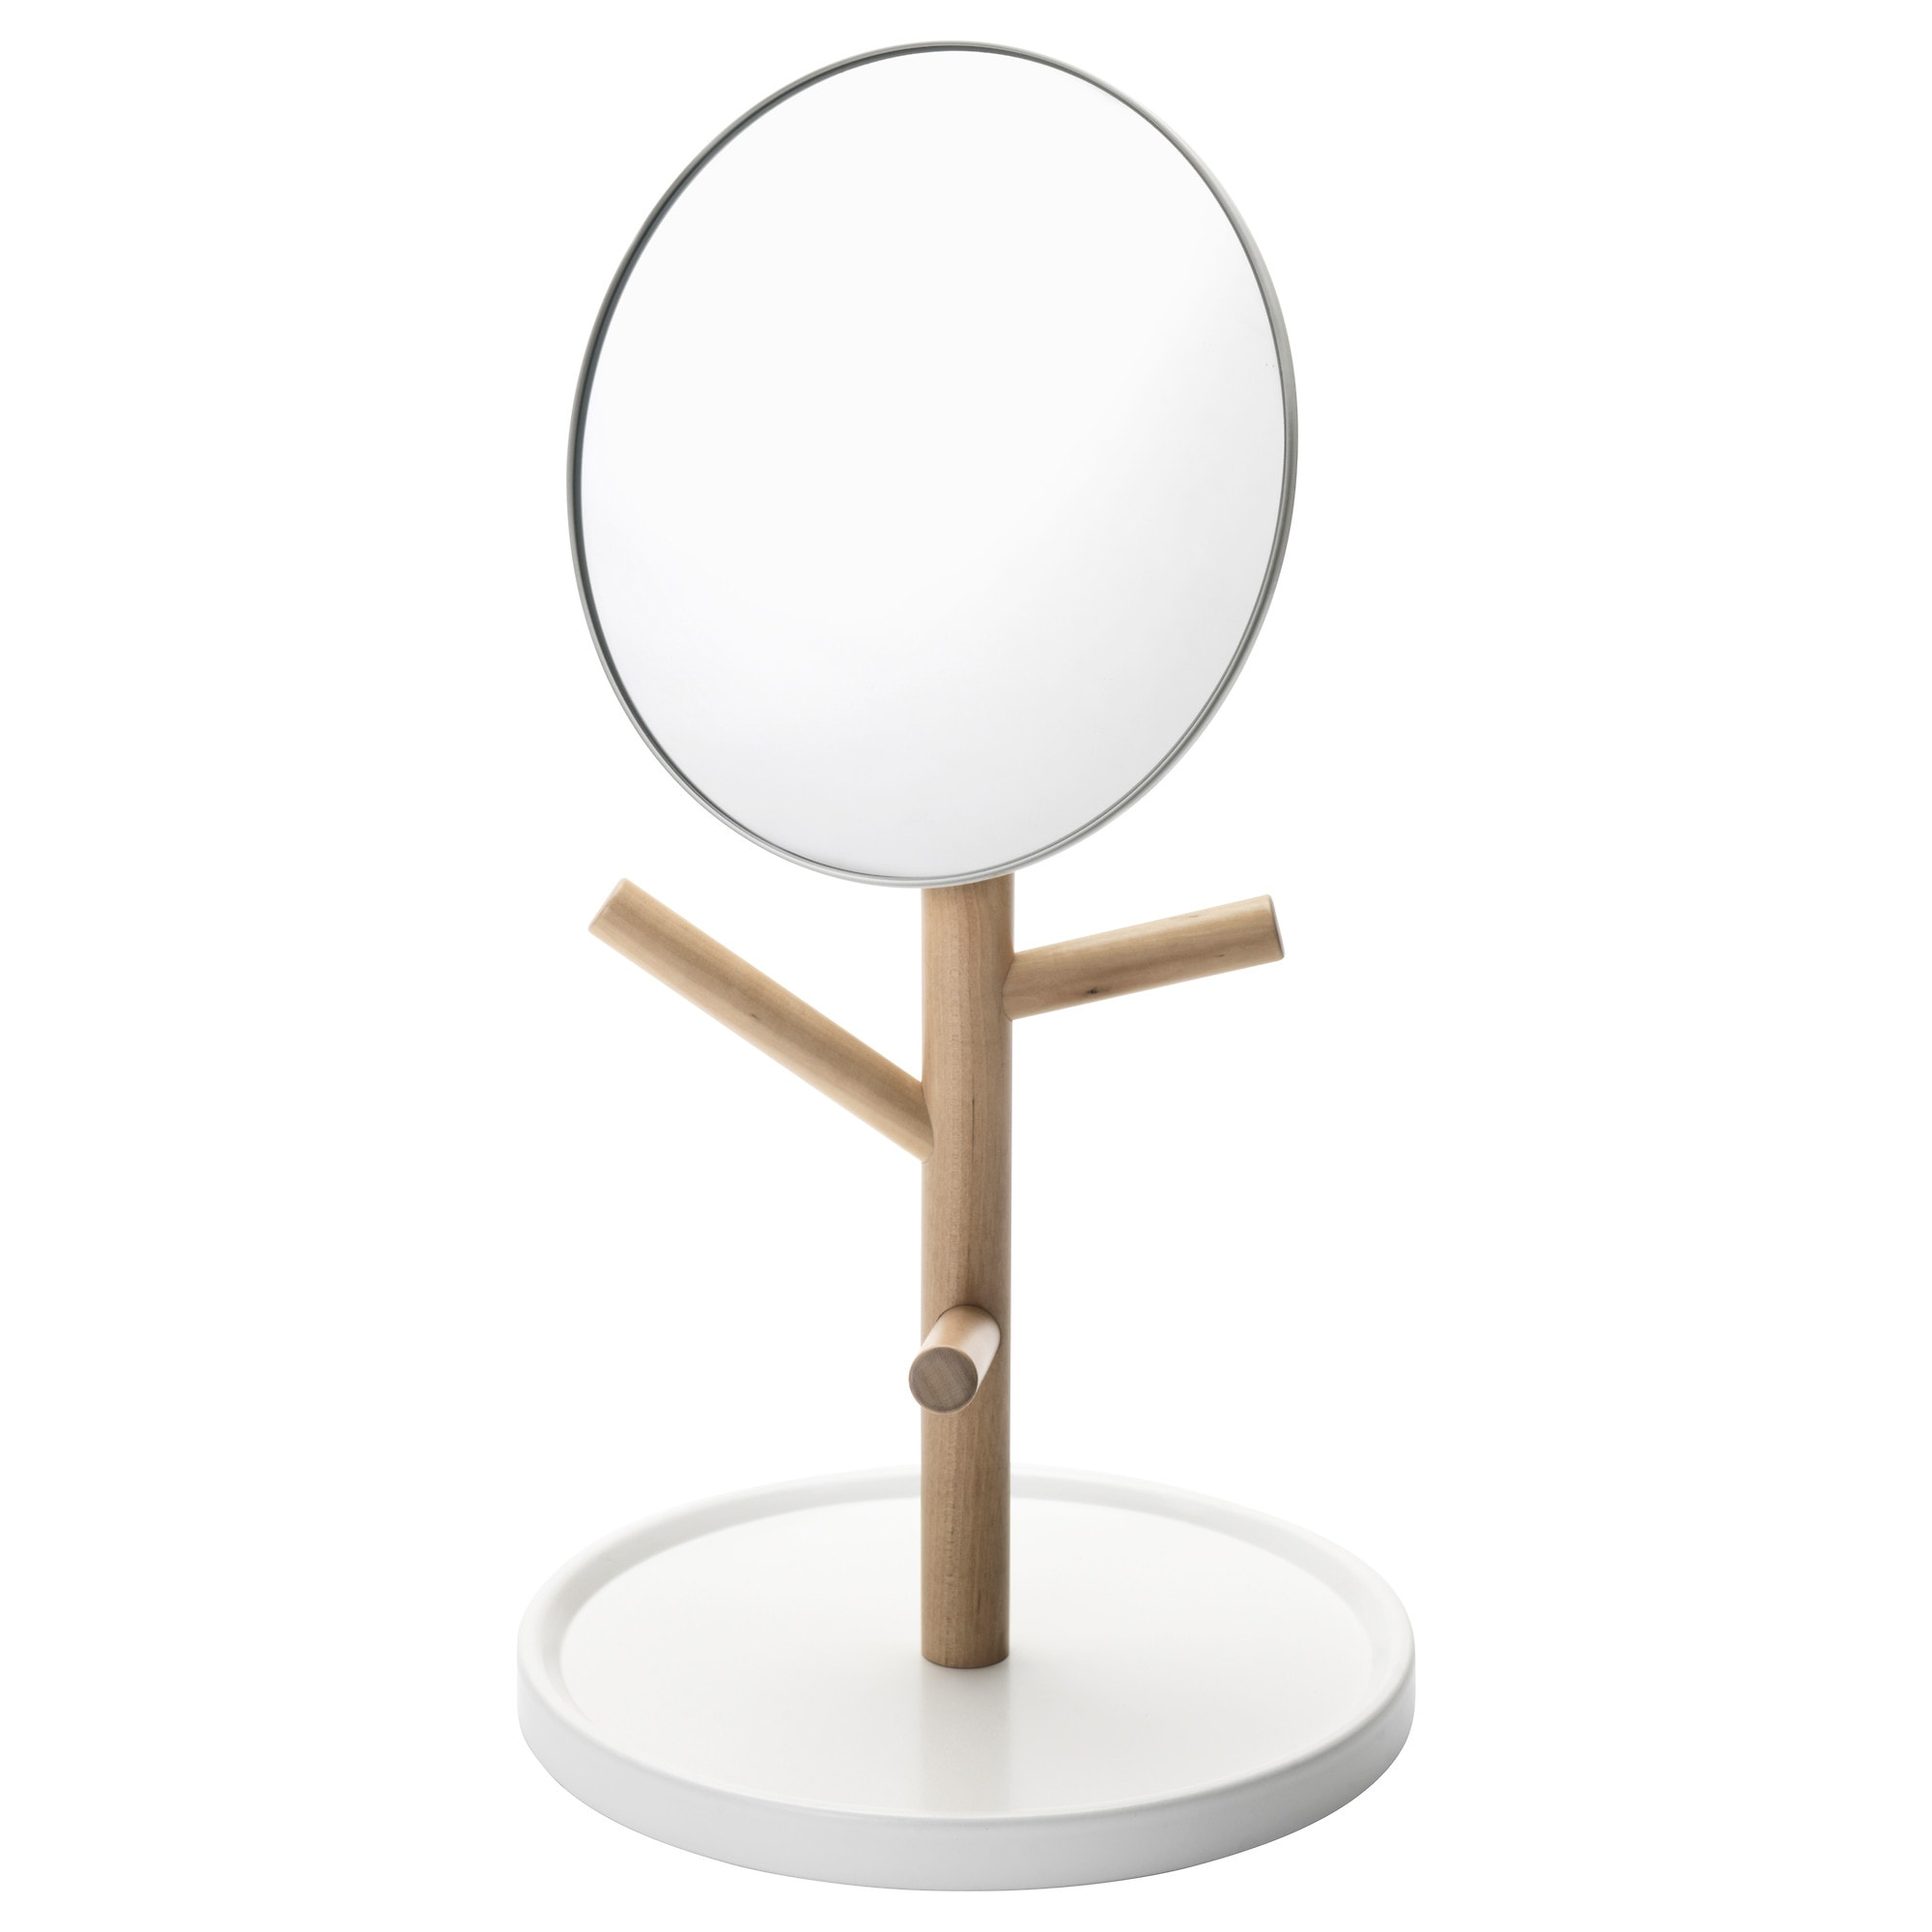 Wall Table Ikea Ikea ps 2014 Table Mirror